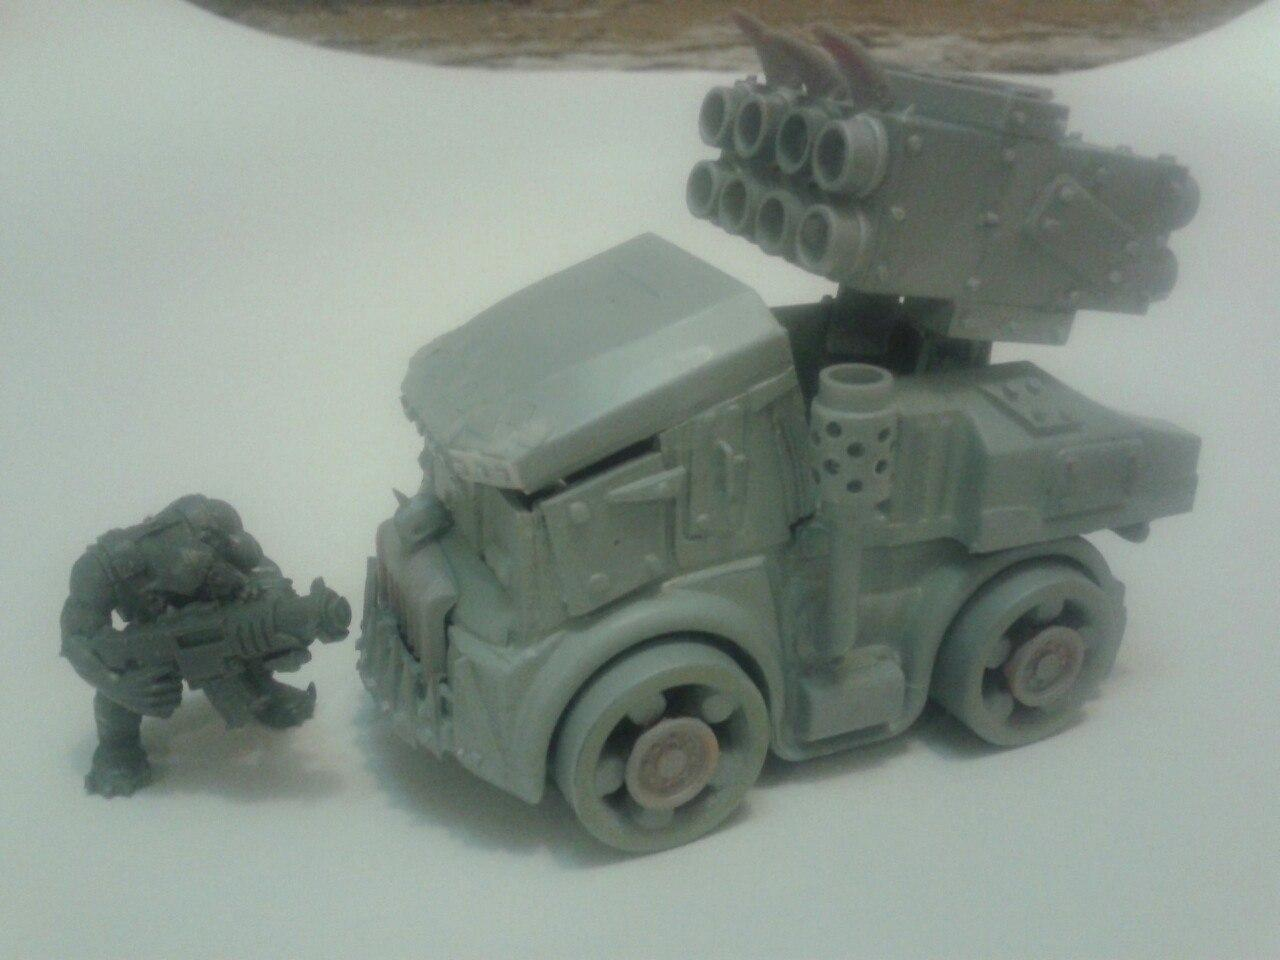 Buggy, Conversion, Orks, Toy